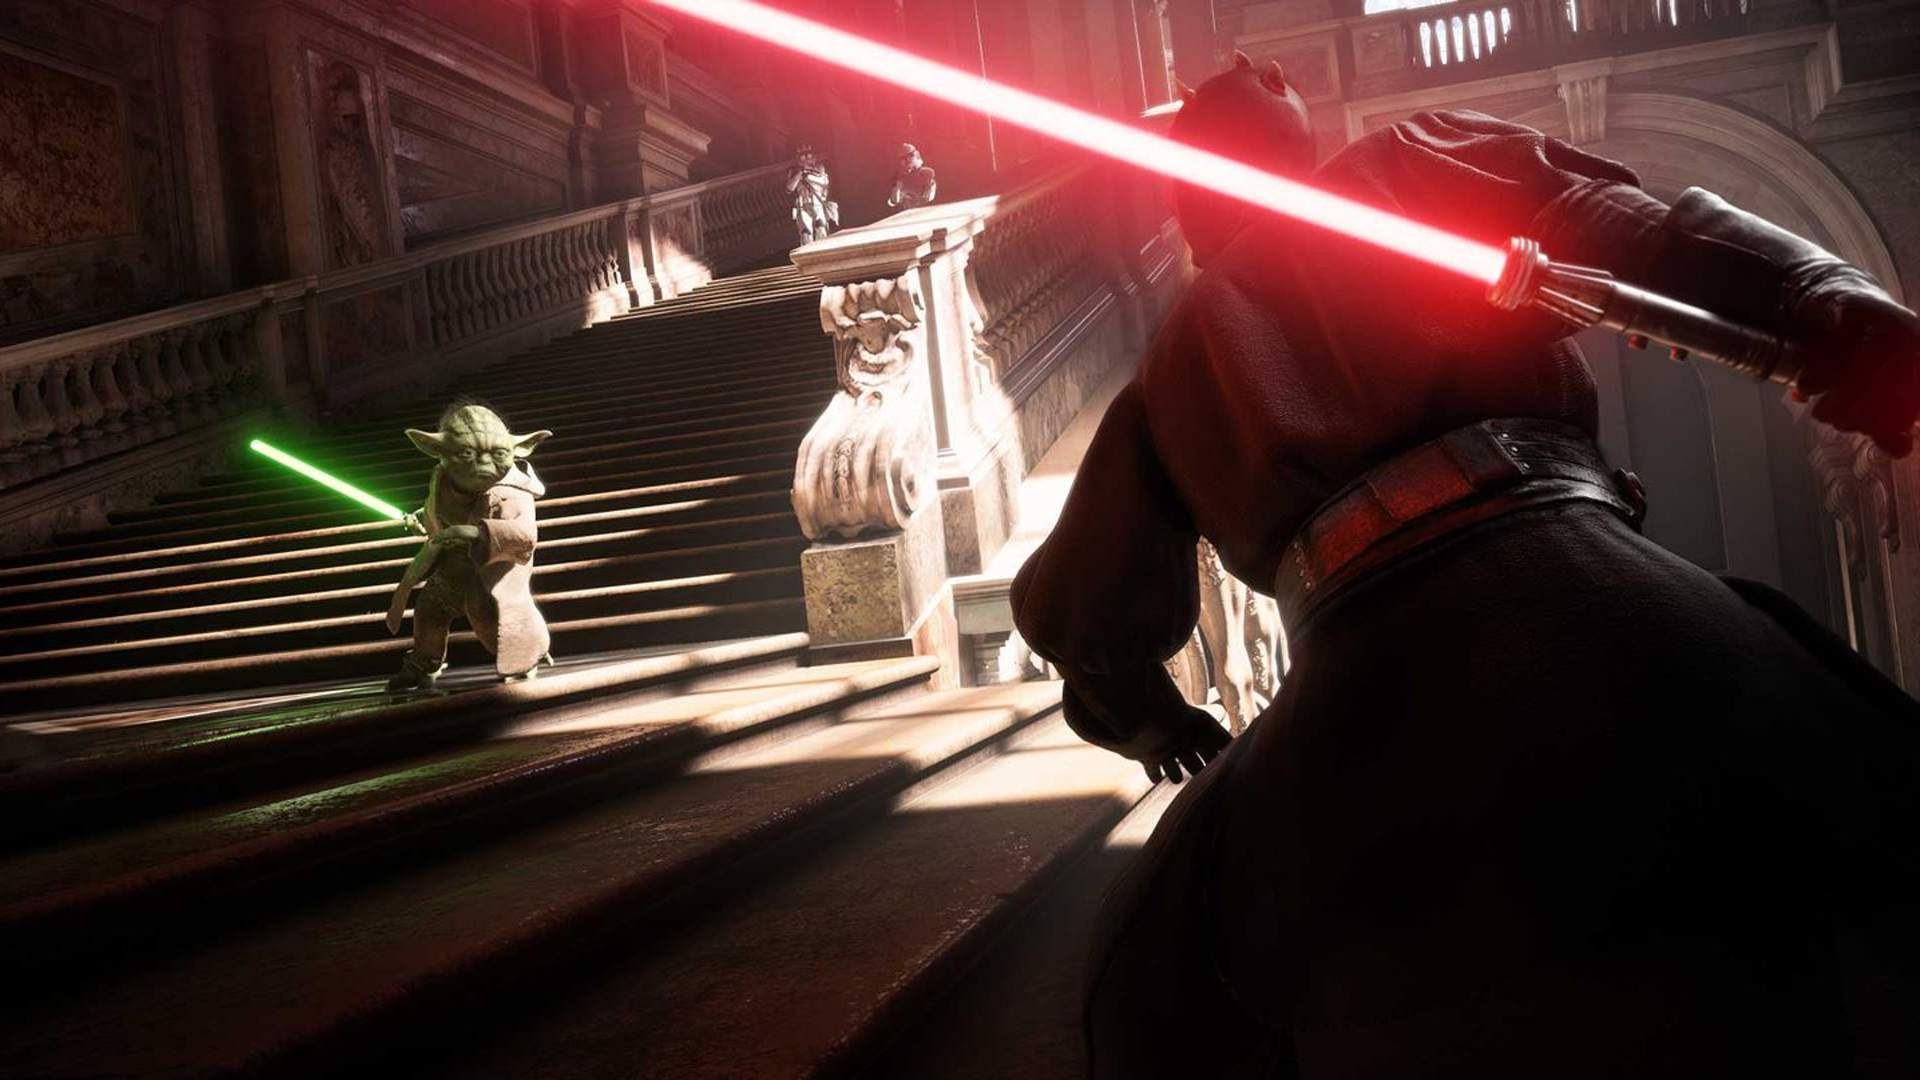 Star Wars Battlefront II online video game on Xbox One and PS4.